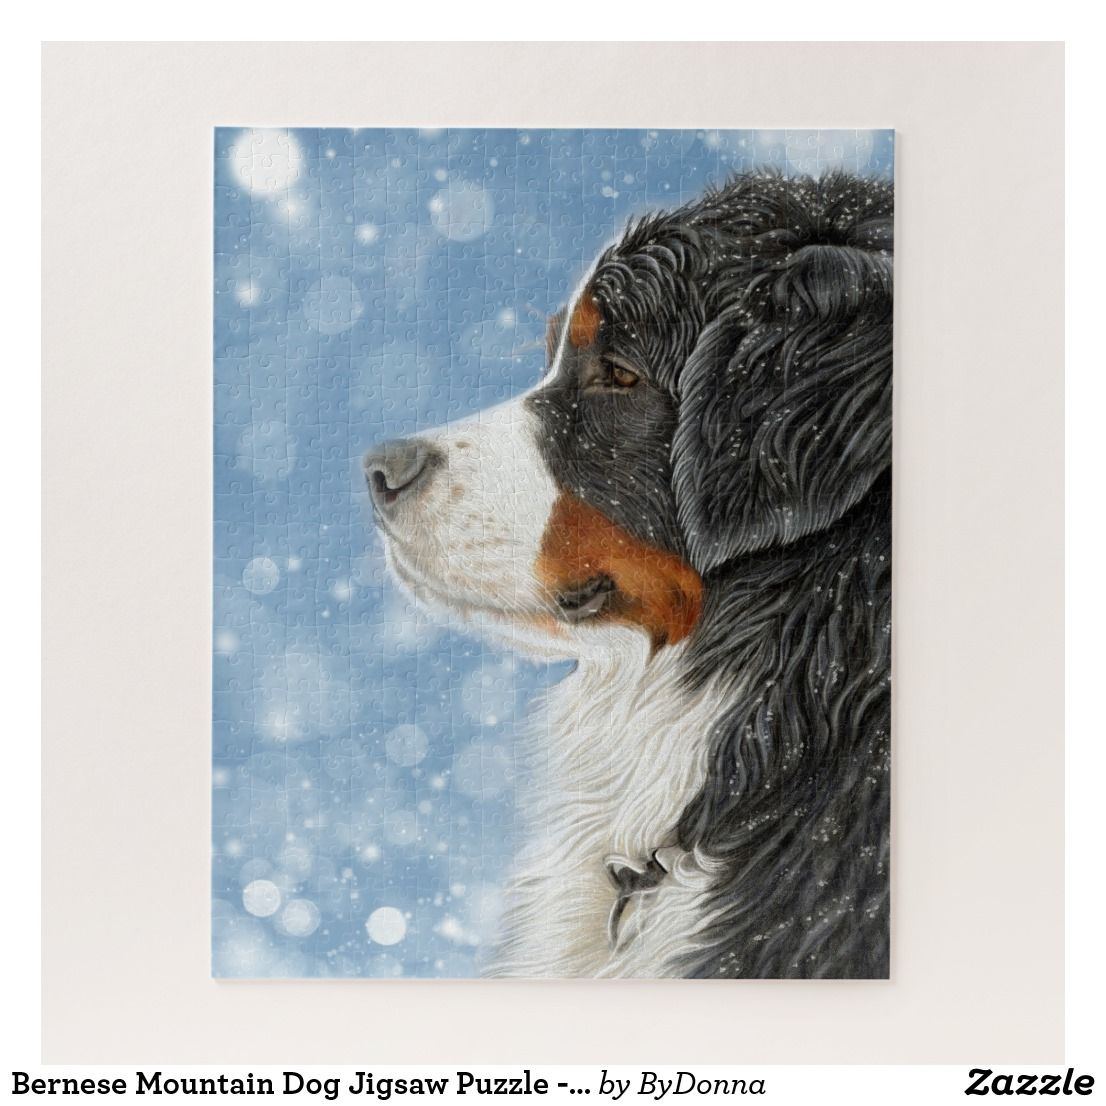 Bernese Mountain Dog Jigsaw Puzzle Ideal Gift For Dog Lovers Bernese Christmas Gifts And Decorations Bernese Mountain Dog Mountain Dogs Dog Art